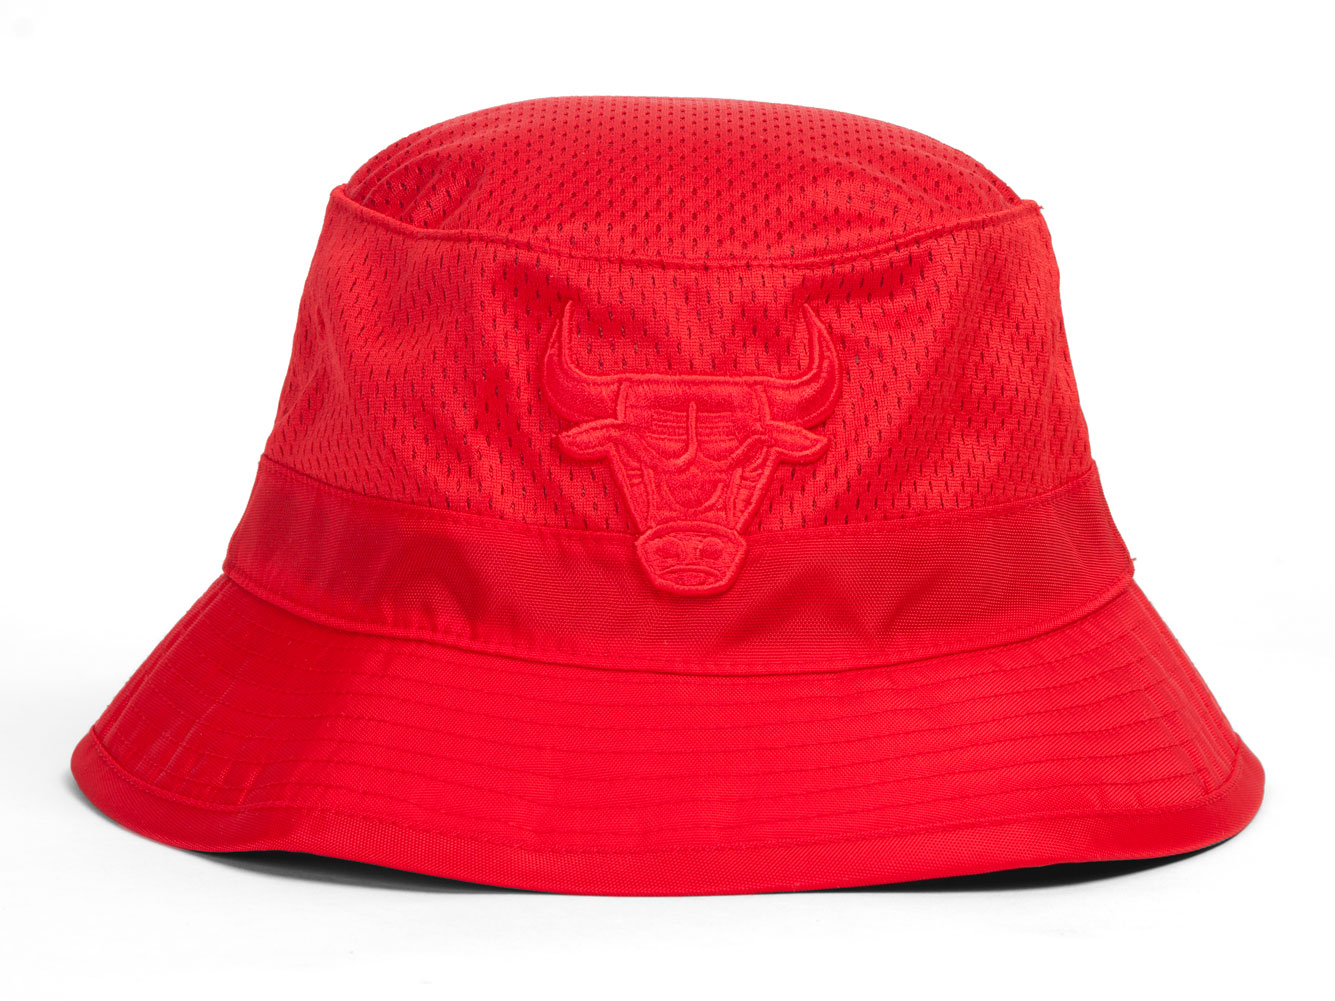 b9b5e2667 buy chicago bulls bucket hat b4be8 6f96b